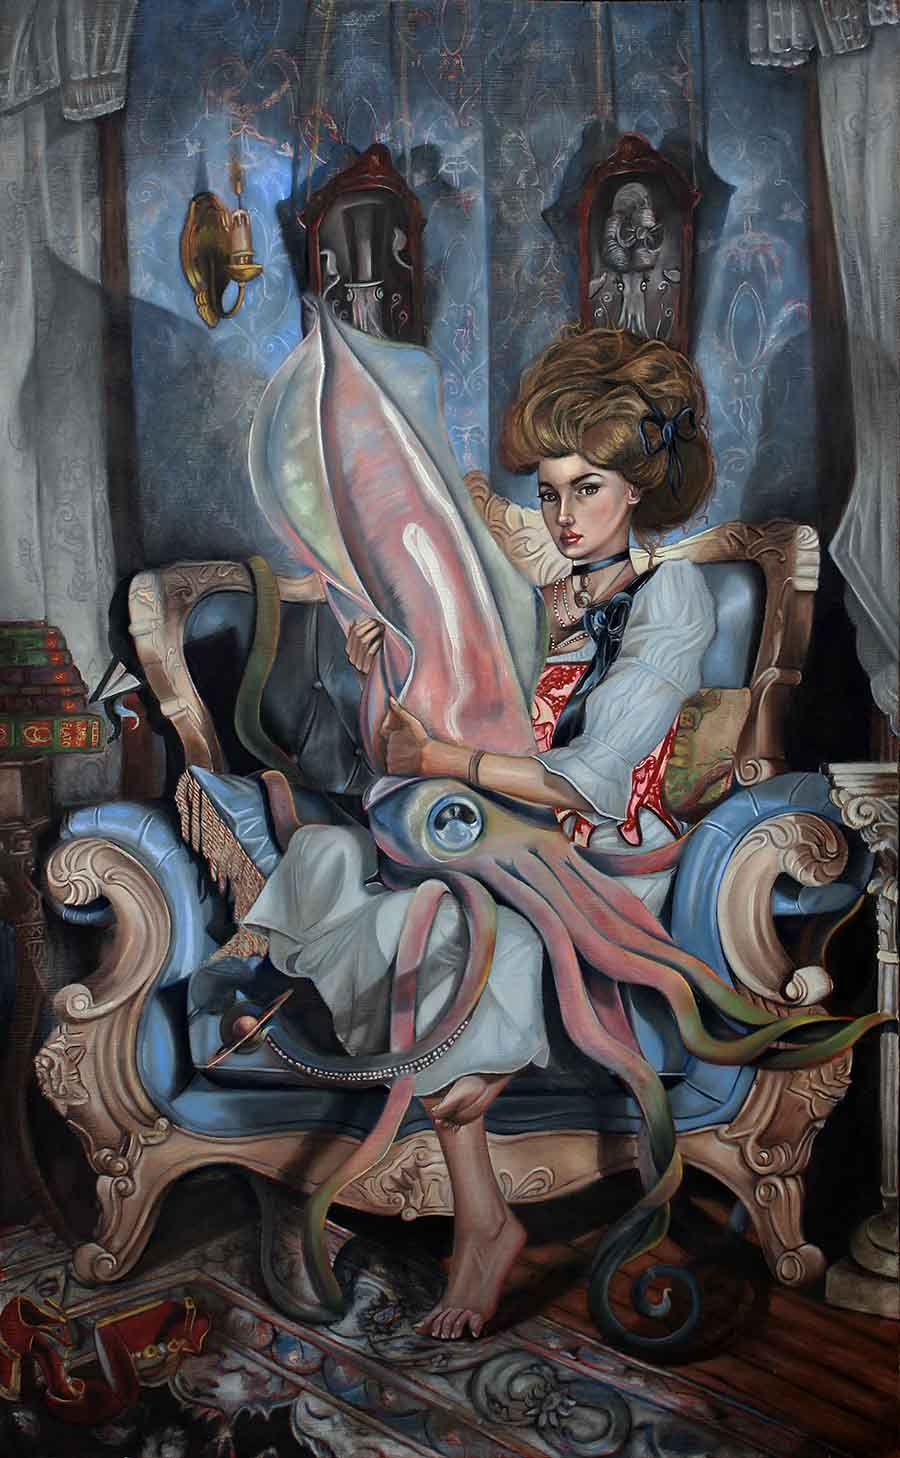 """Joseph Weinreb - painting Beyond the Pillars of Hercules, 2021 Oil on wood board, 26 1/2 x 16 1/4"""""""